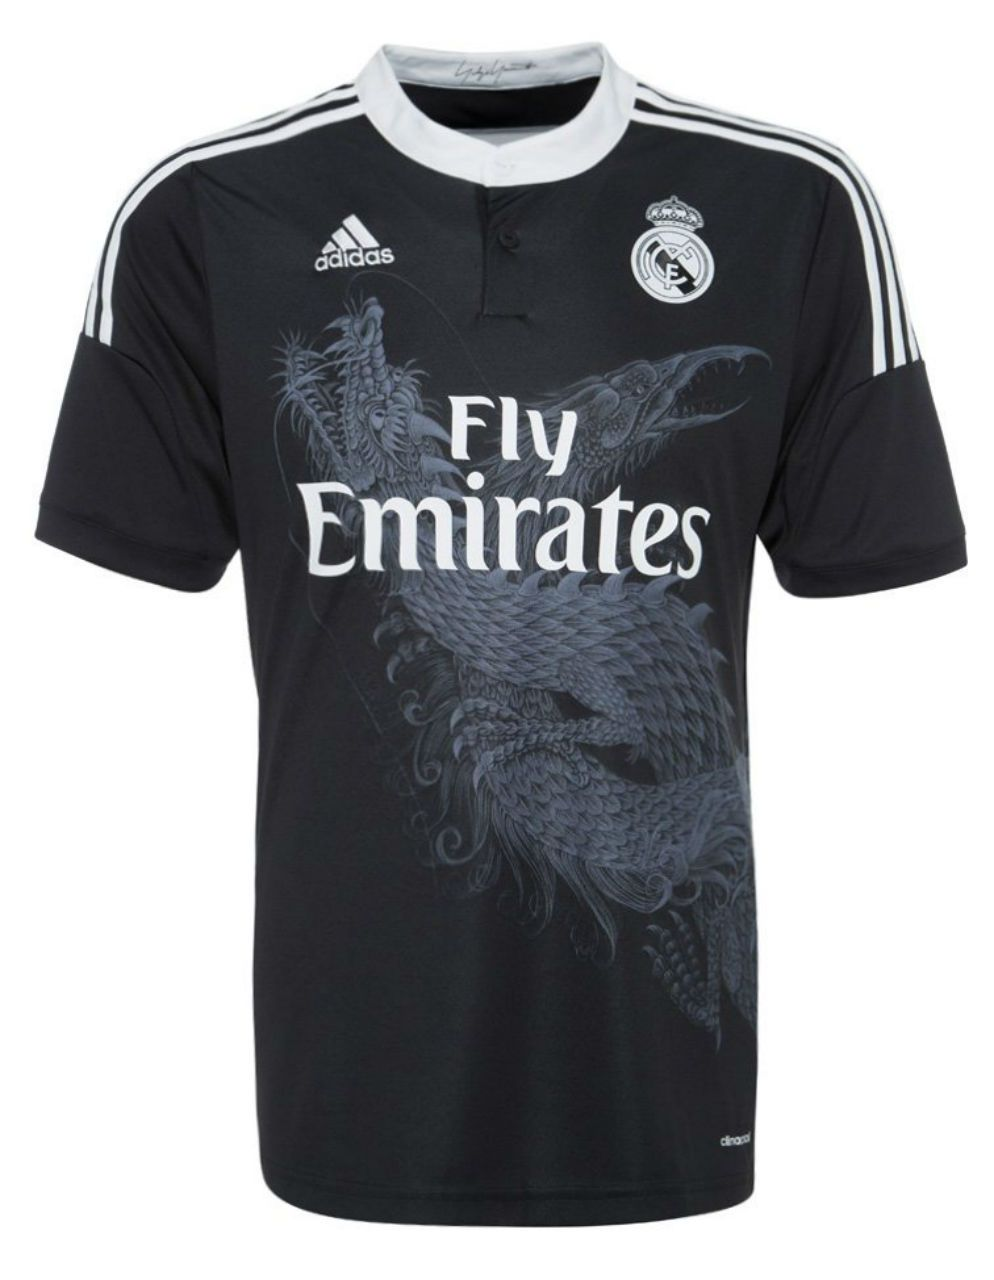 Double Dragon - the Real Madrid 3rd kit for 2014-2015.  06e9b996402a